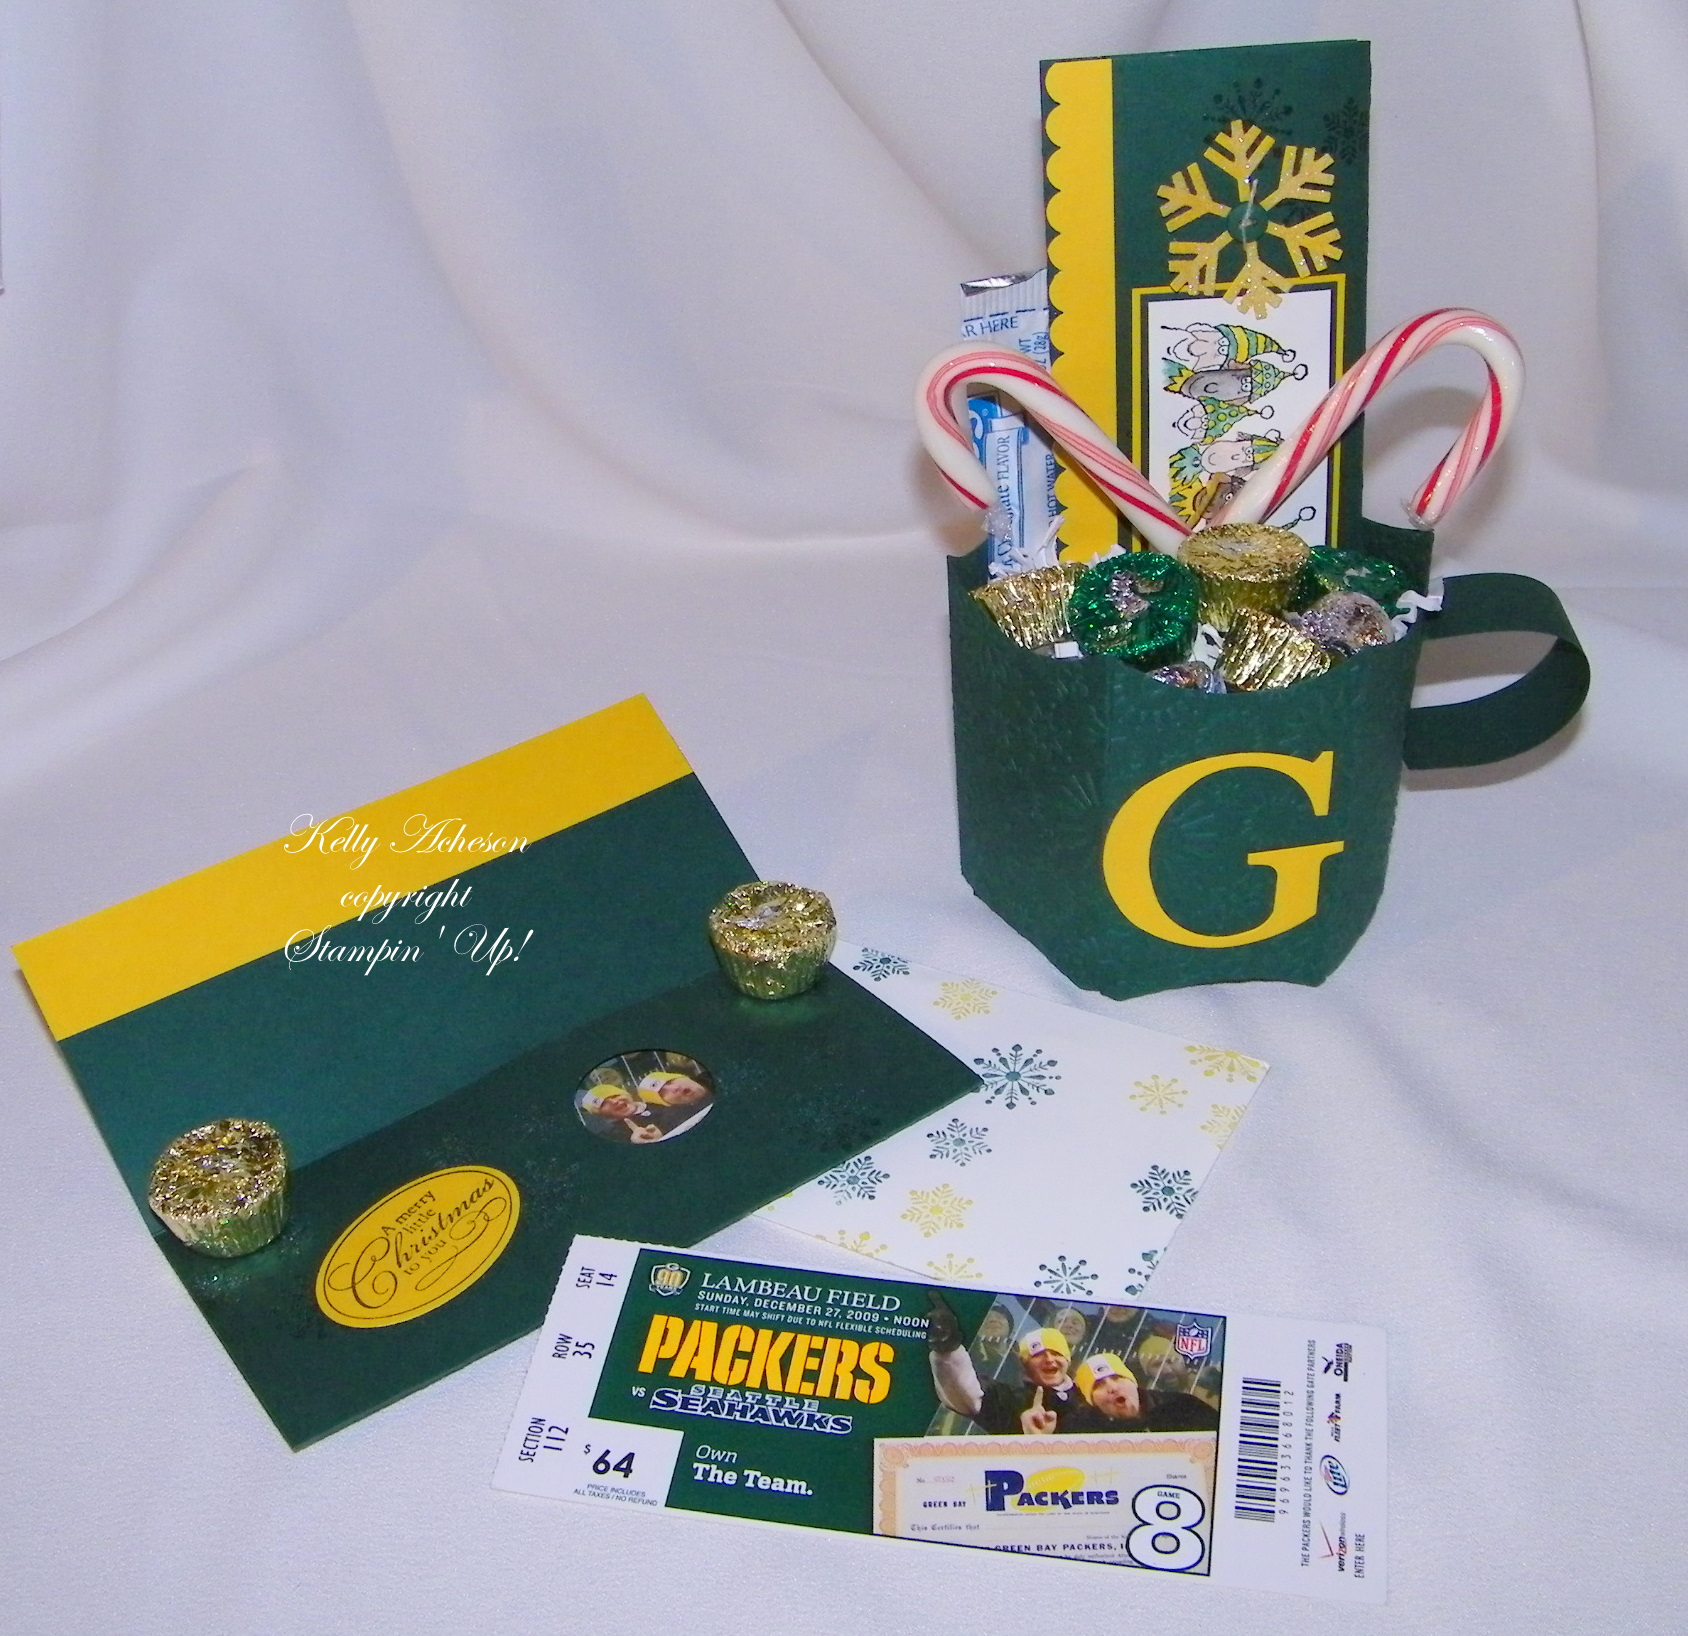 ... Green Bay Packer cocoa cup. 101_3376 & Green Bay Packer Gift Idea - A Stamp Above